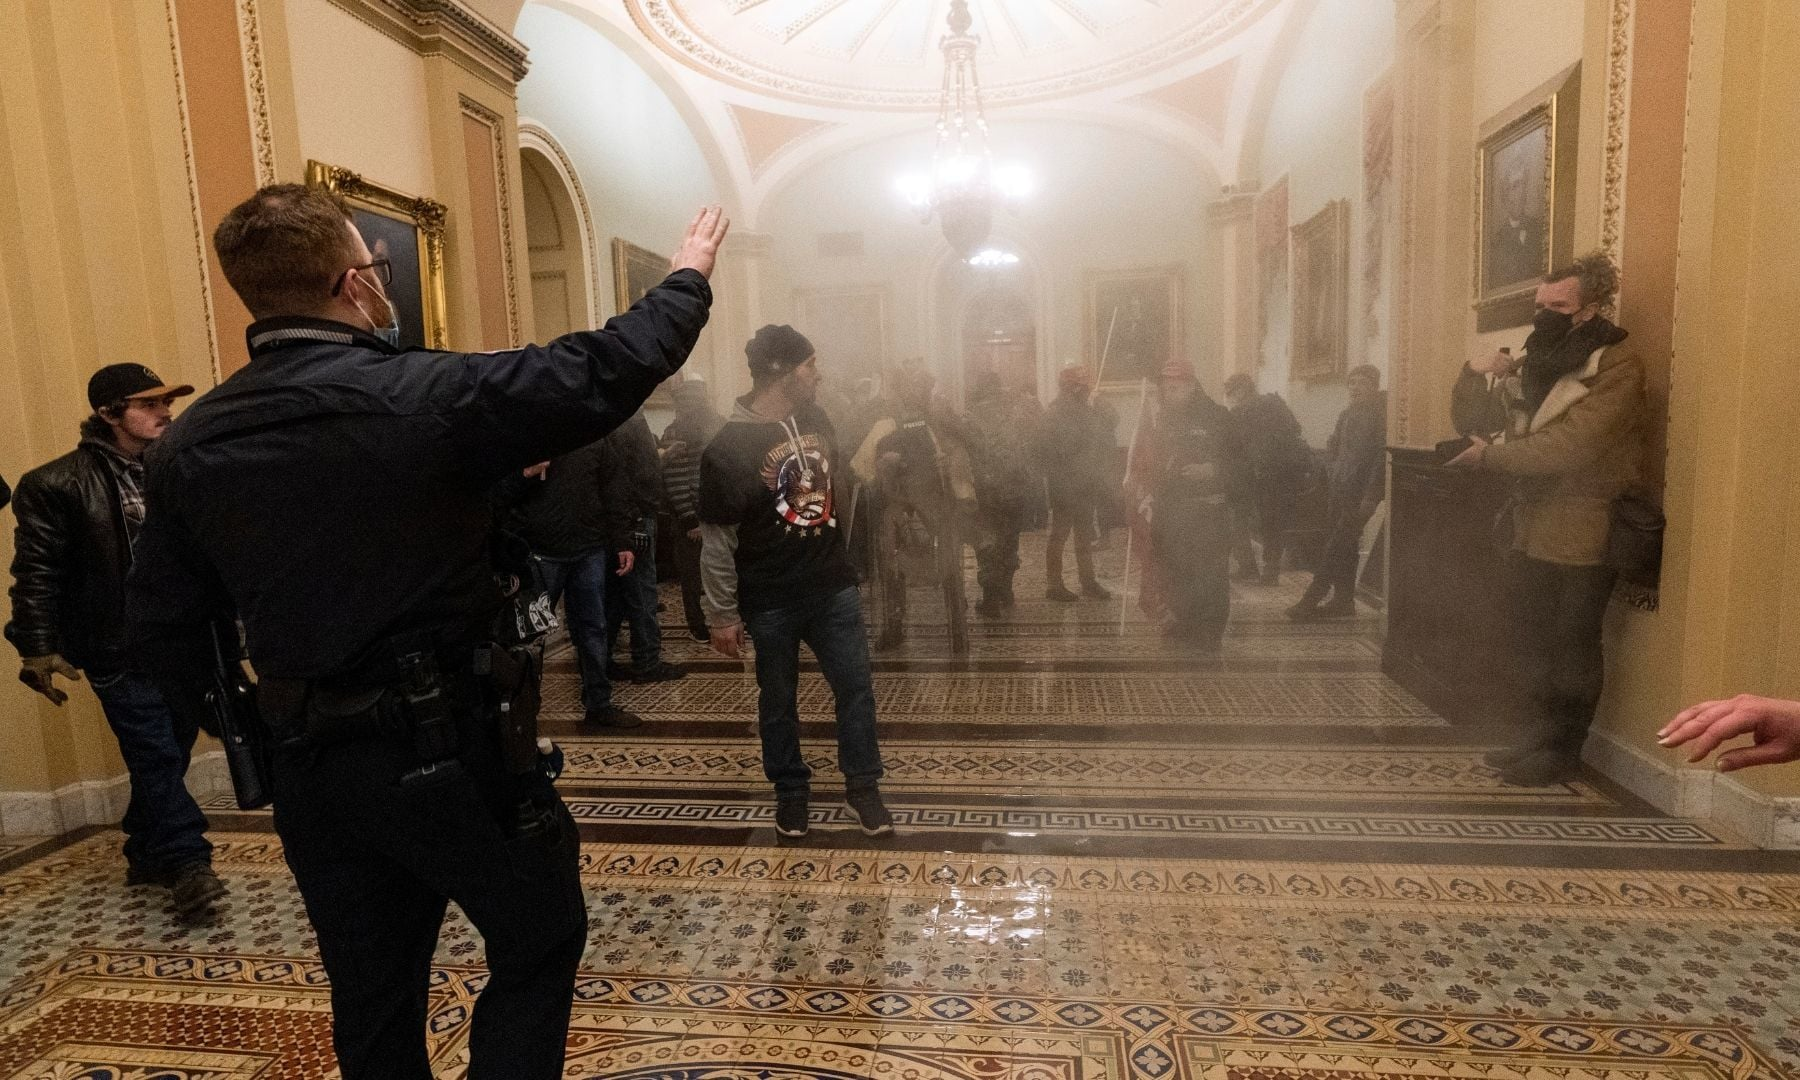 Smoke fills the walkway outside the Senate Chamber as supporters of President Donald Trump are confronted by US Capitol Police officers inside the Capitol. — AP